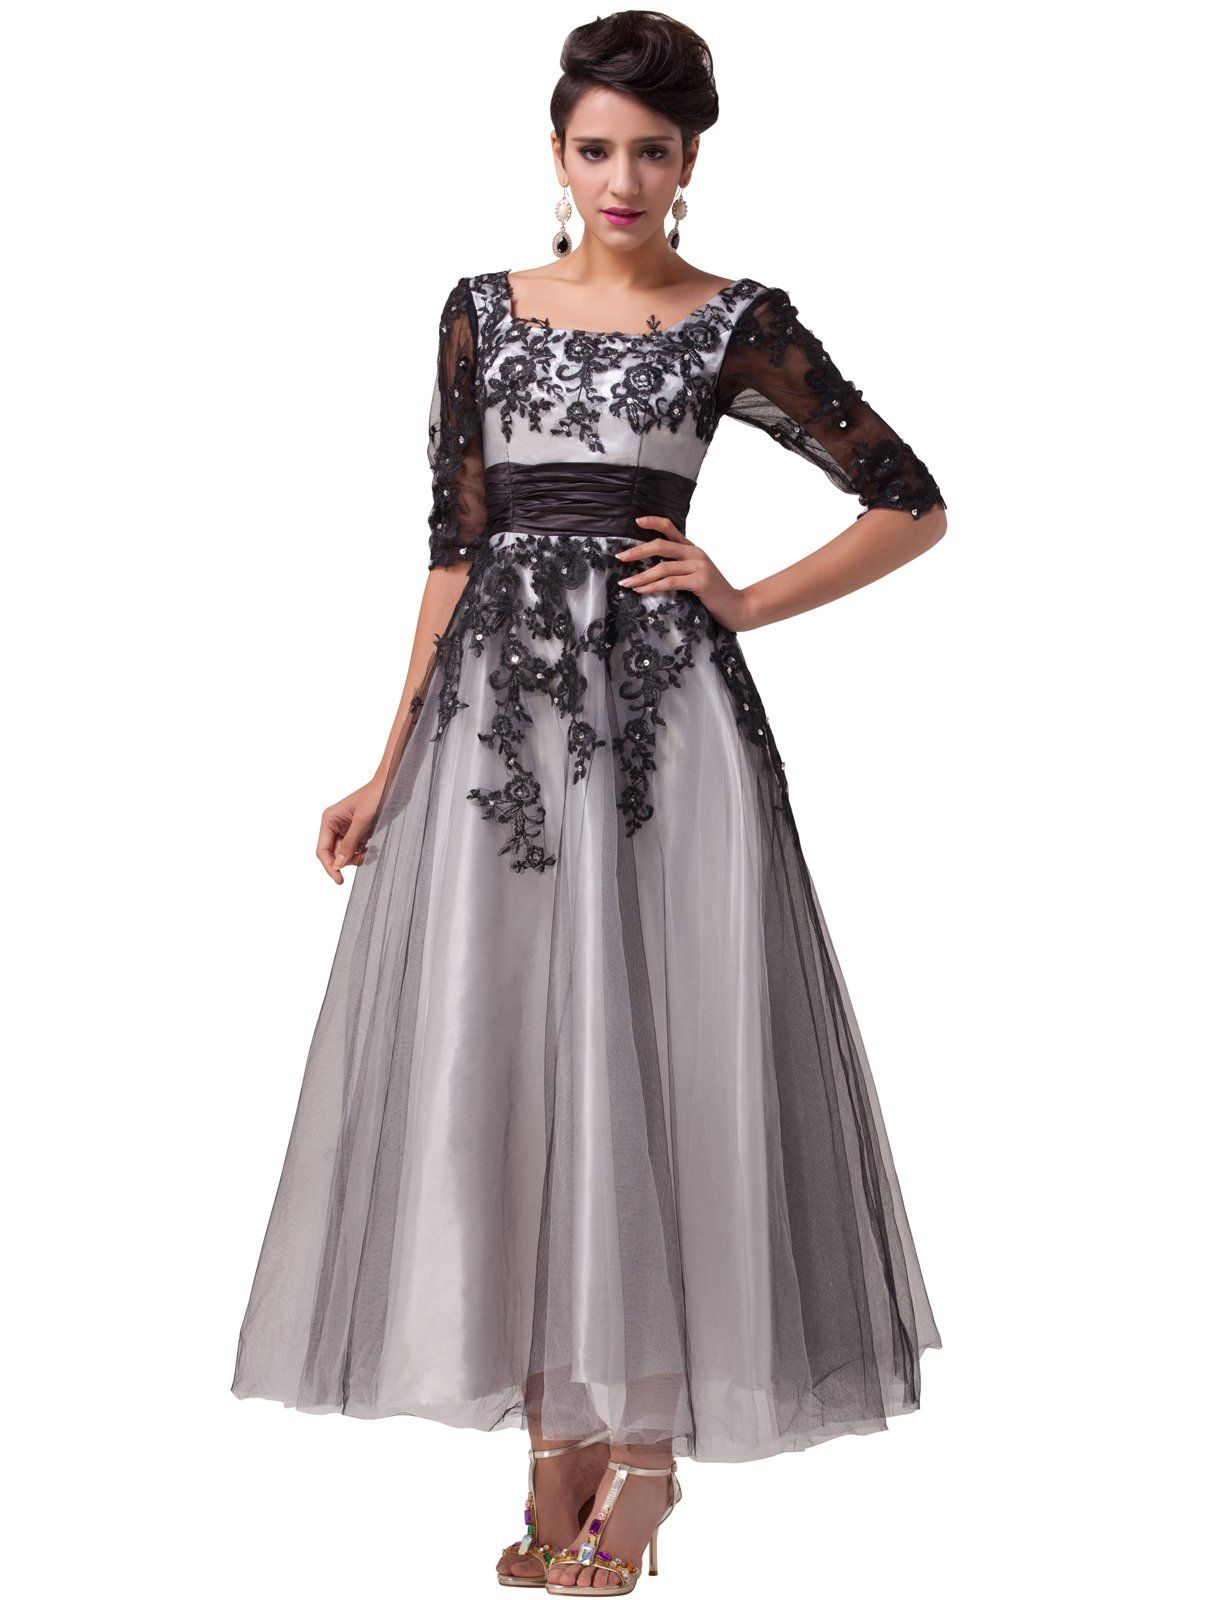 Grace karin womenus black tulle embroidery half sleeve long formal